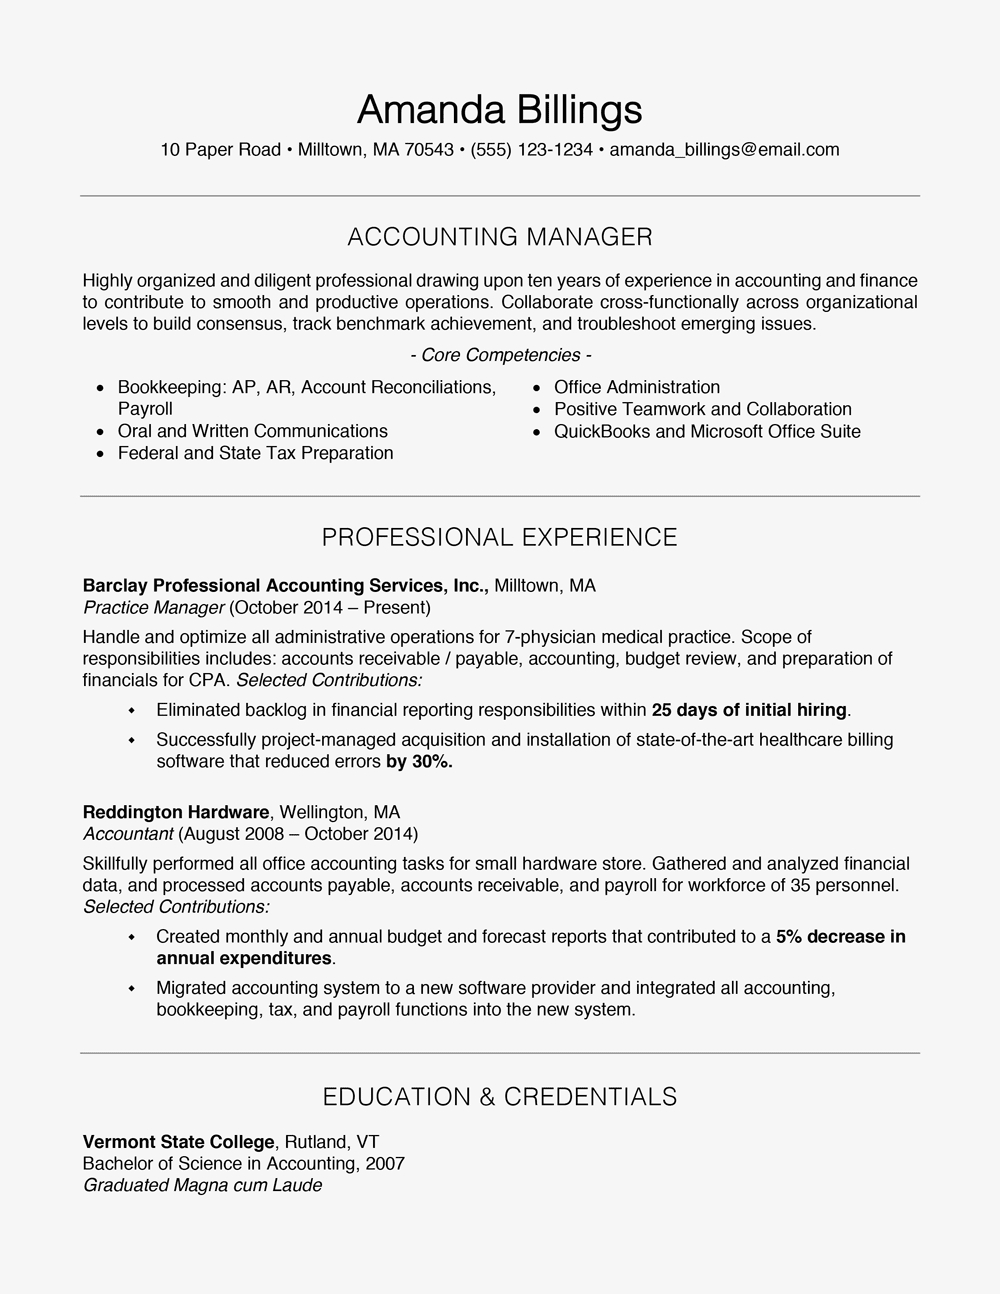 Medical Billing Resume Examples - 100 Free Professional Resume Examples and Writing Tips